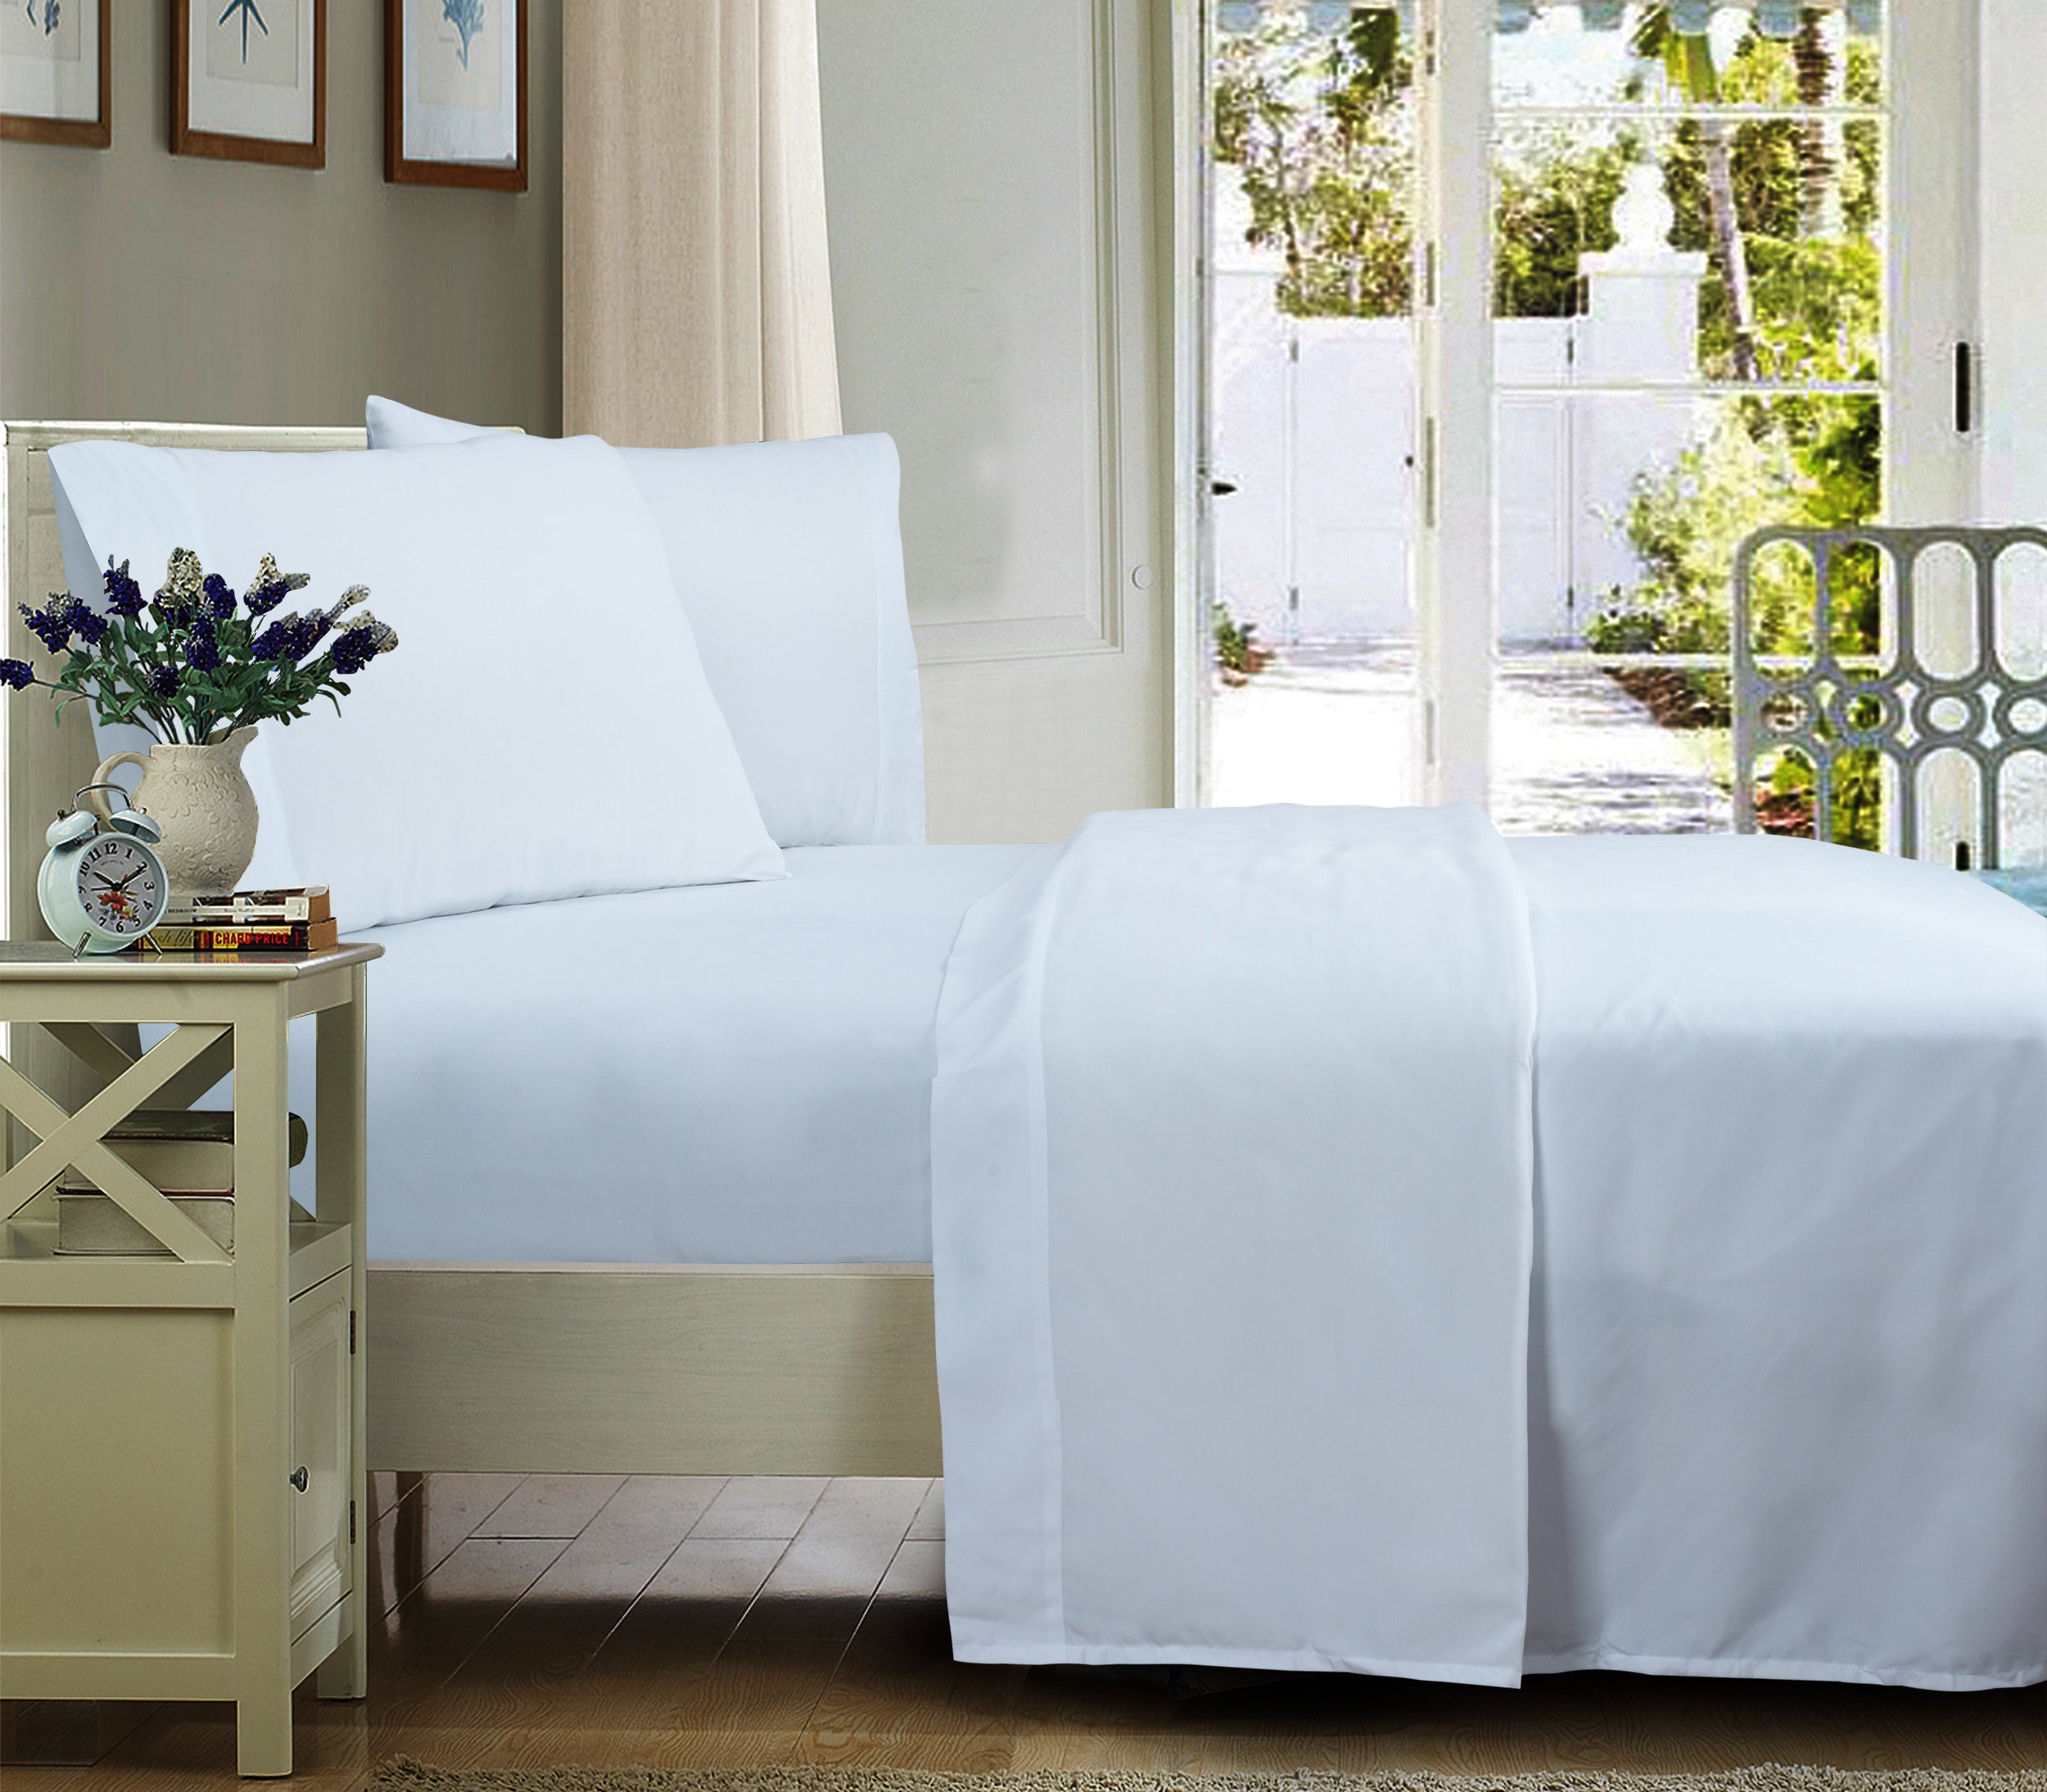 The sheet sets in arctic white on a bed